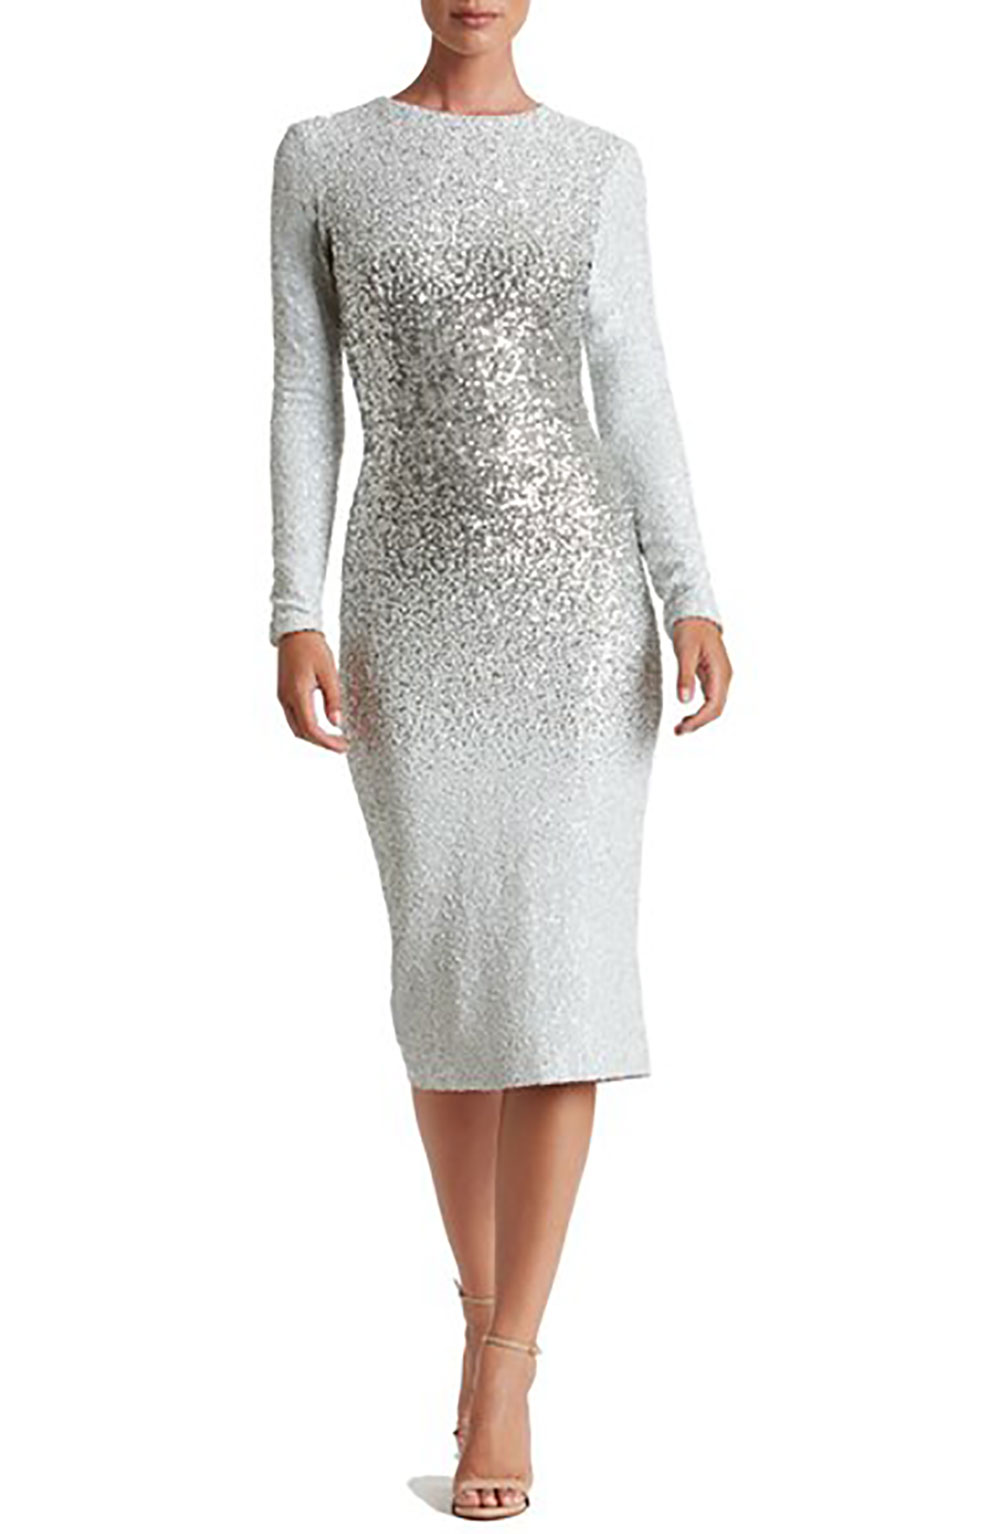 Sequin Silver Midi Dress